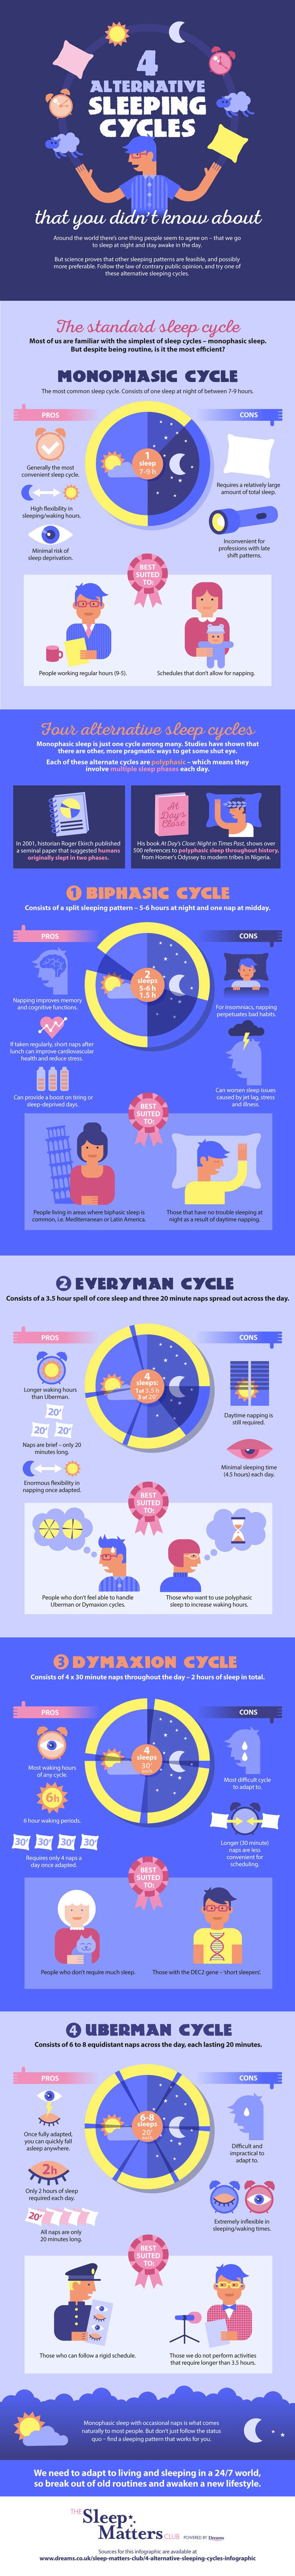 4 Sleep Patterns You Probably Didn't Know About (Infographic)